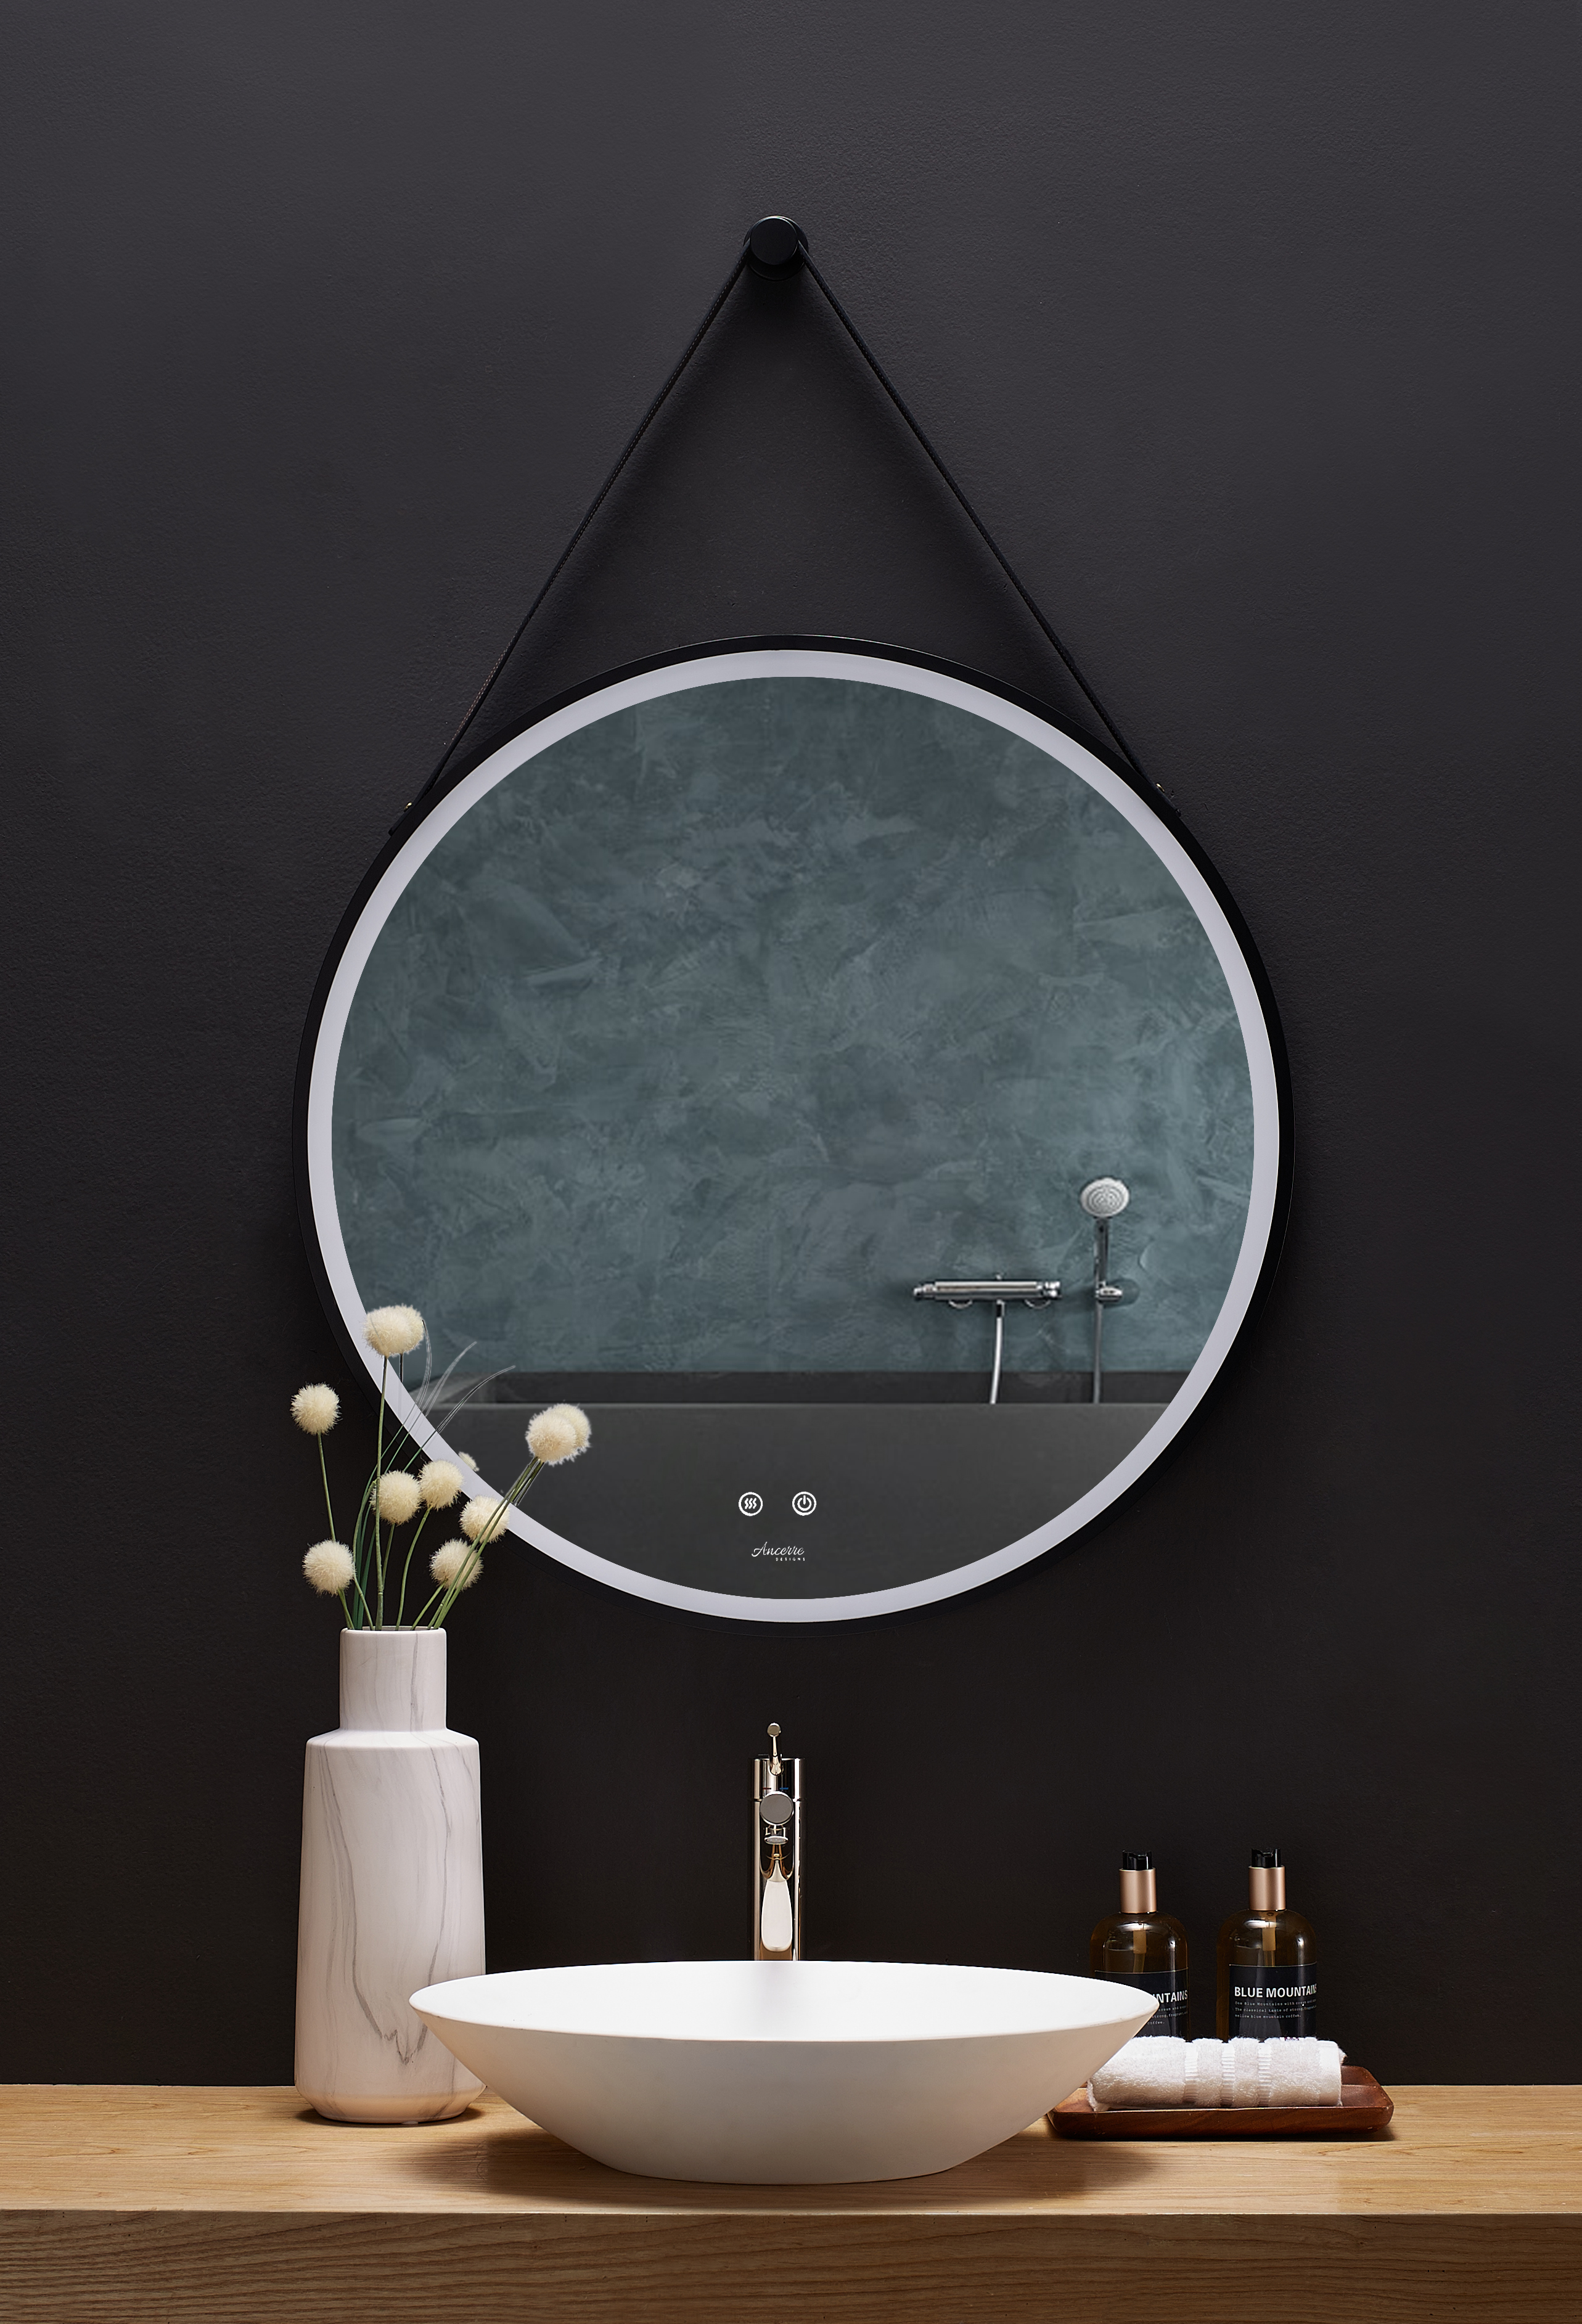 30 in. Round LED Black Framed Mirror with Defogger and Vegan Leather Strap